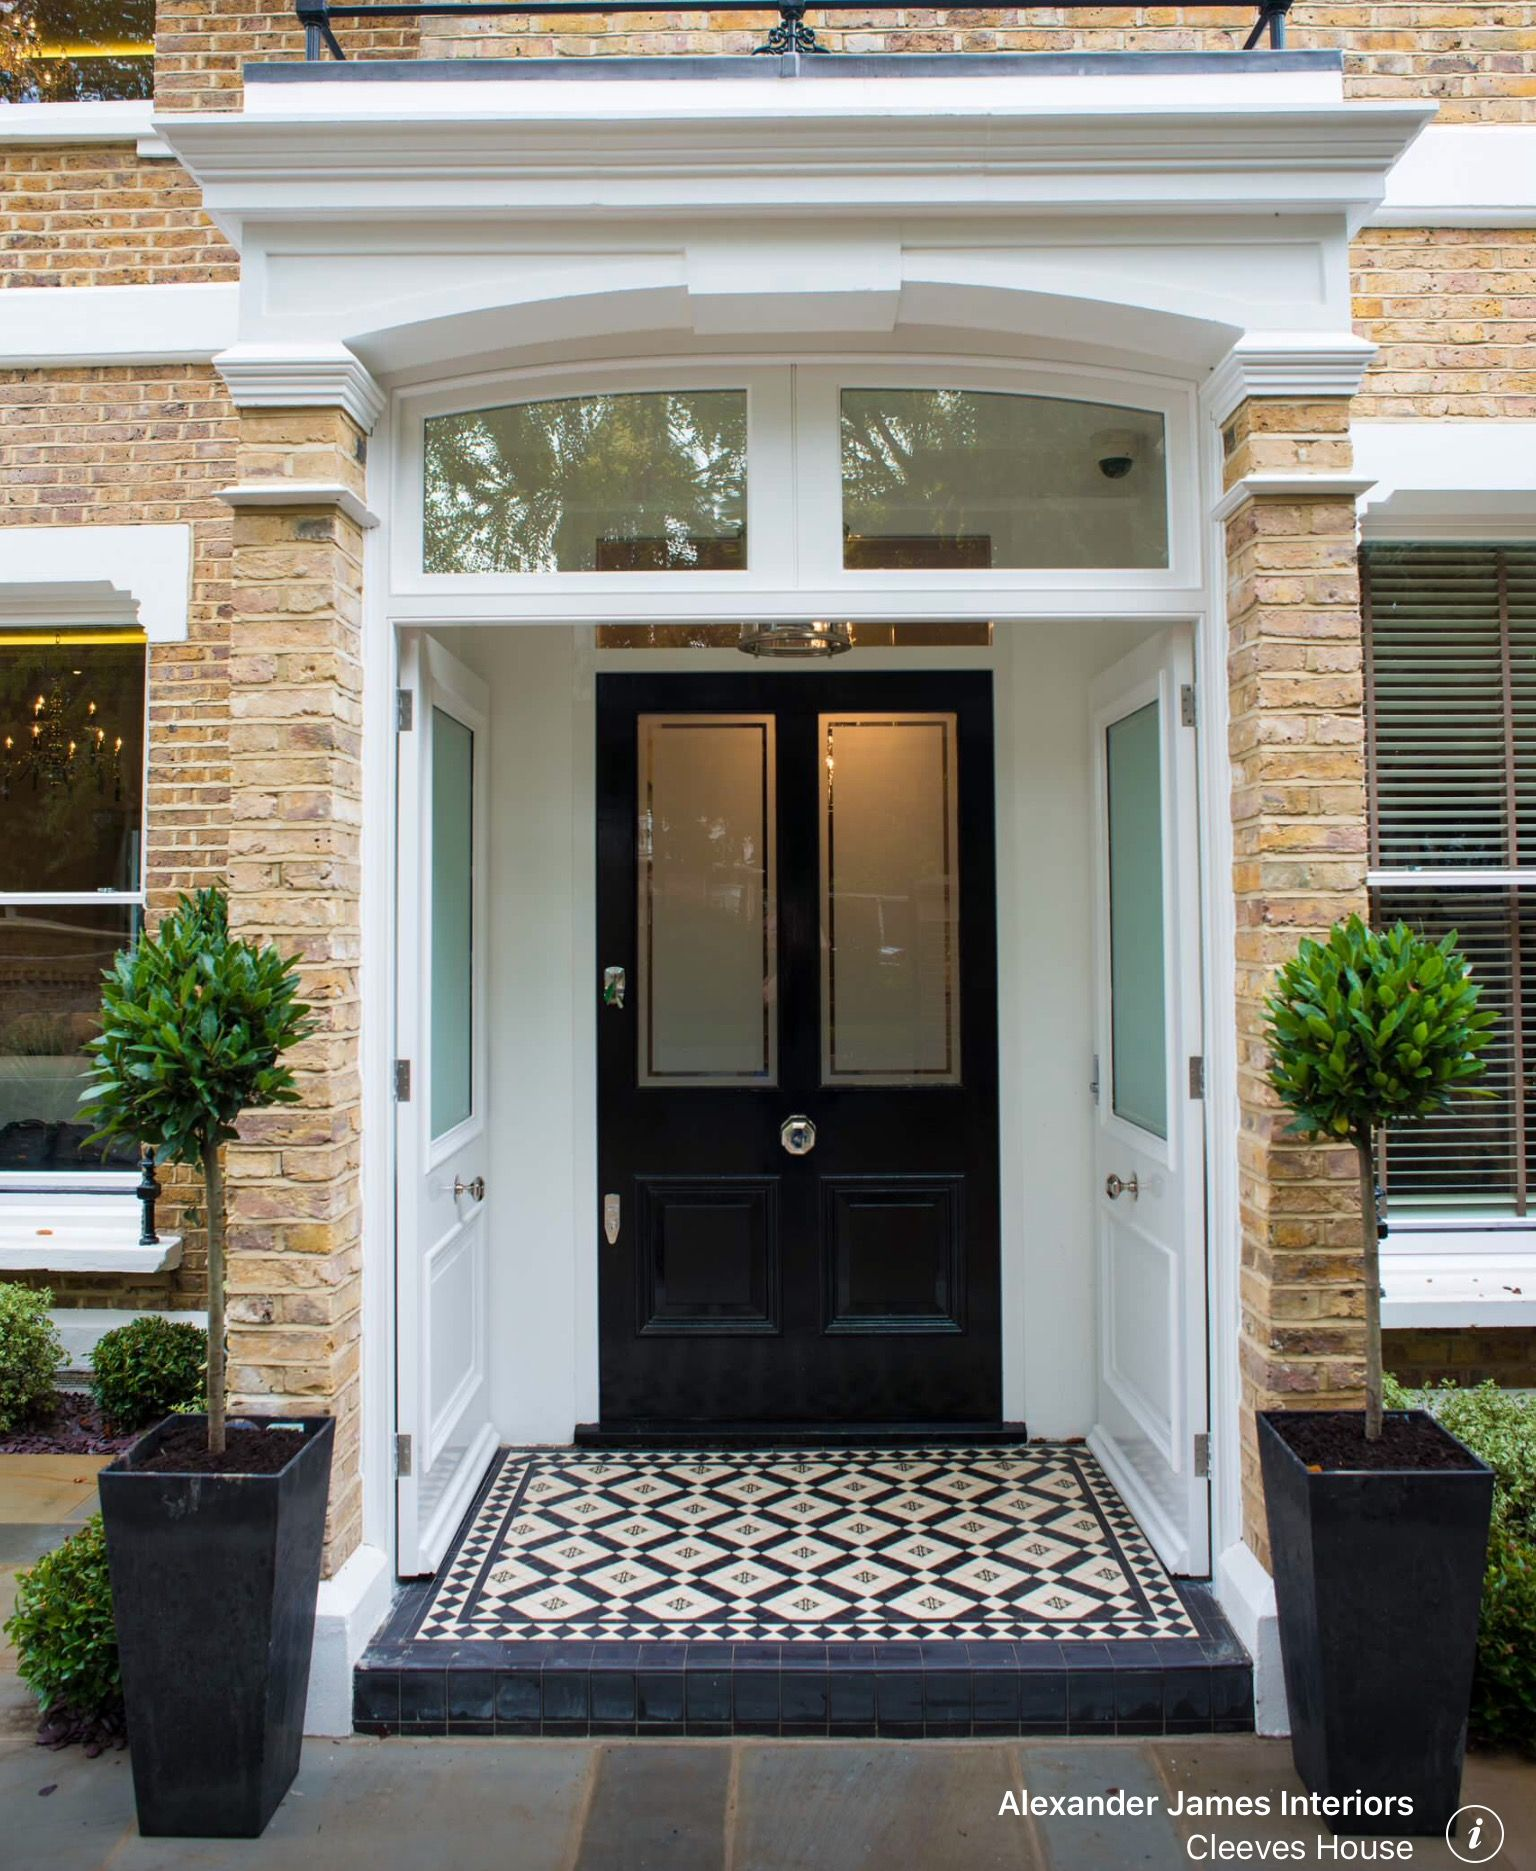 Cleeves House  Traditional  Entry  London  By